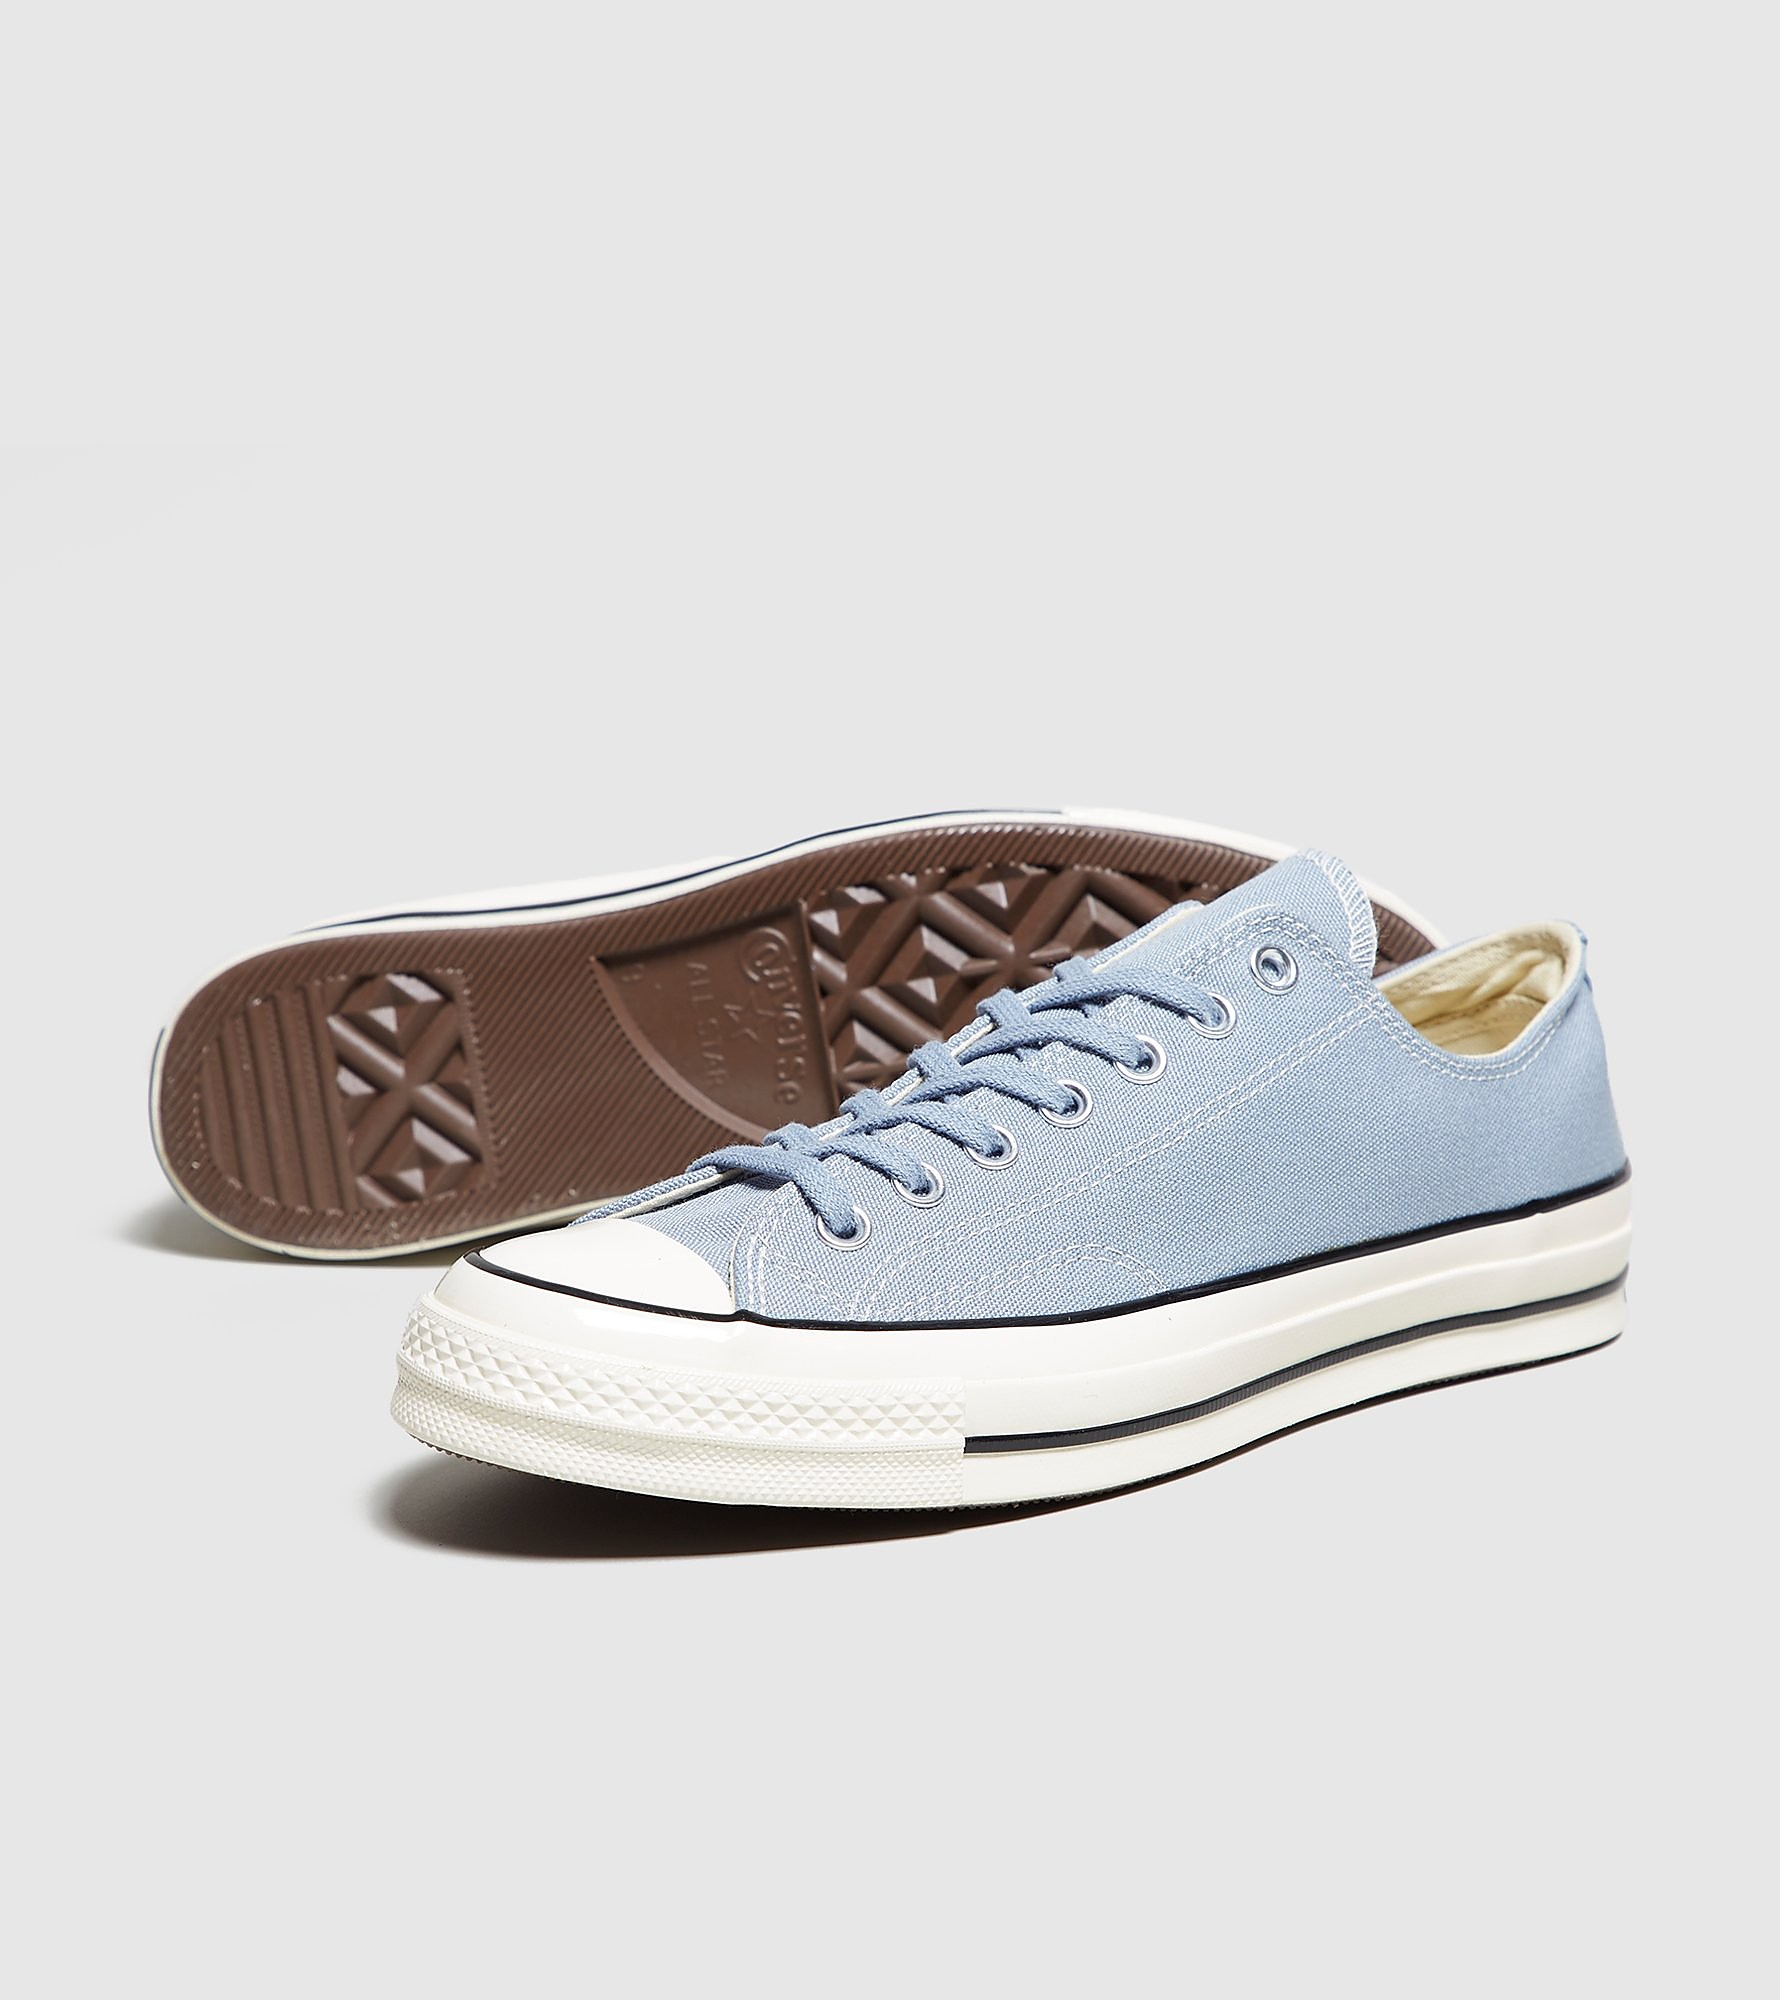 Converse All Star OX 70's